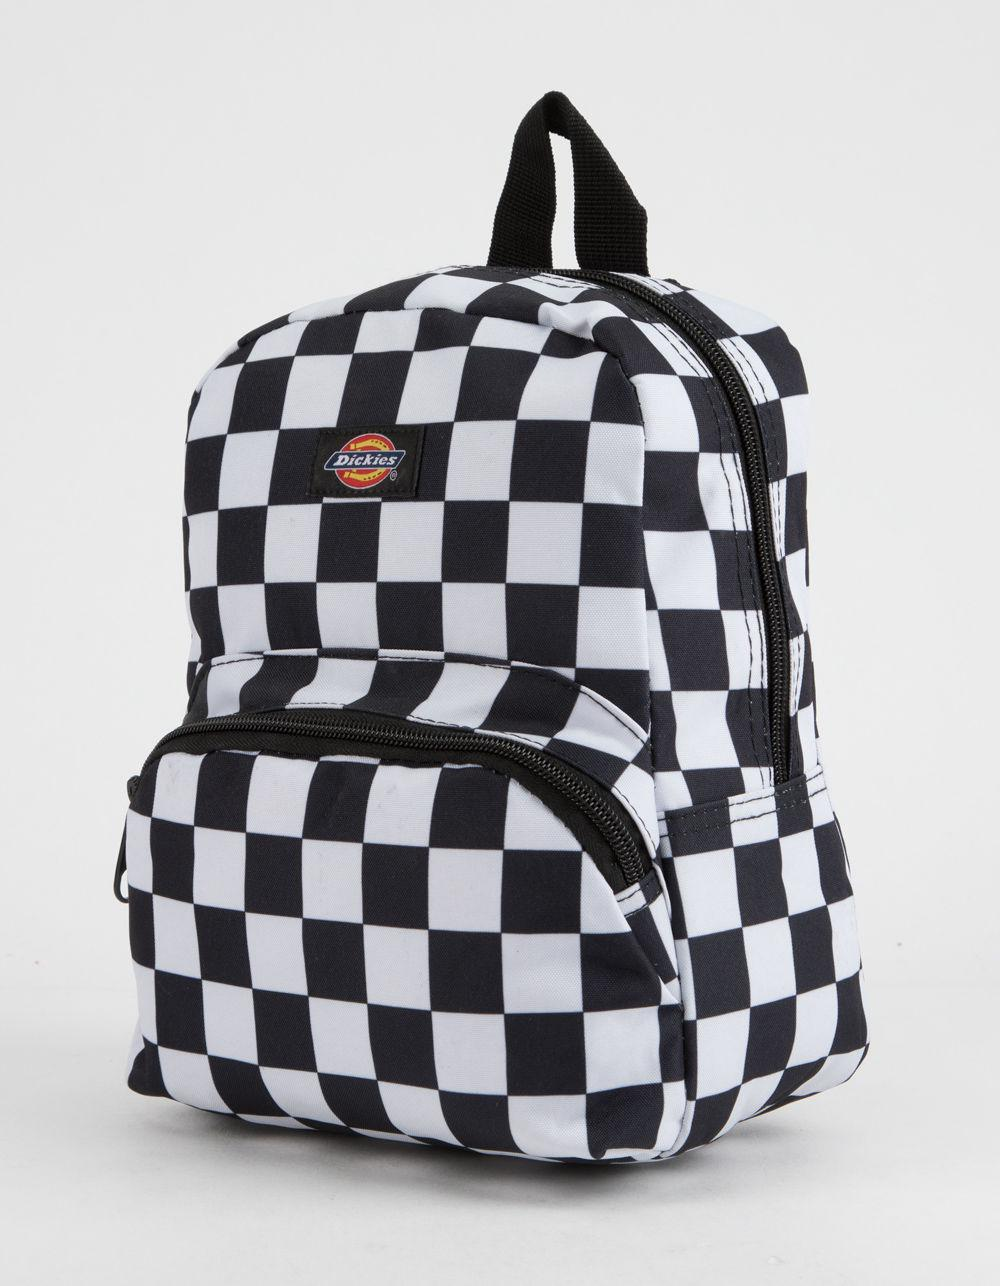 d6a37ff9a5cb Lyst - Dickies Checkered Mini Backpack in Black - Save 34%